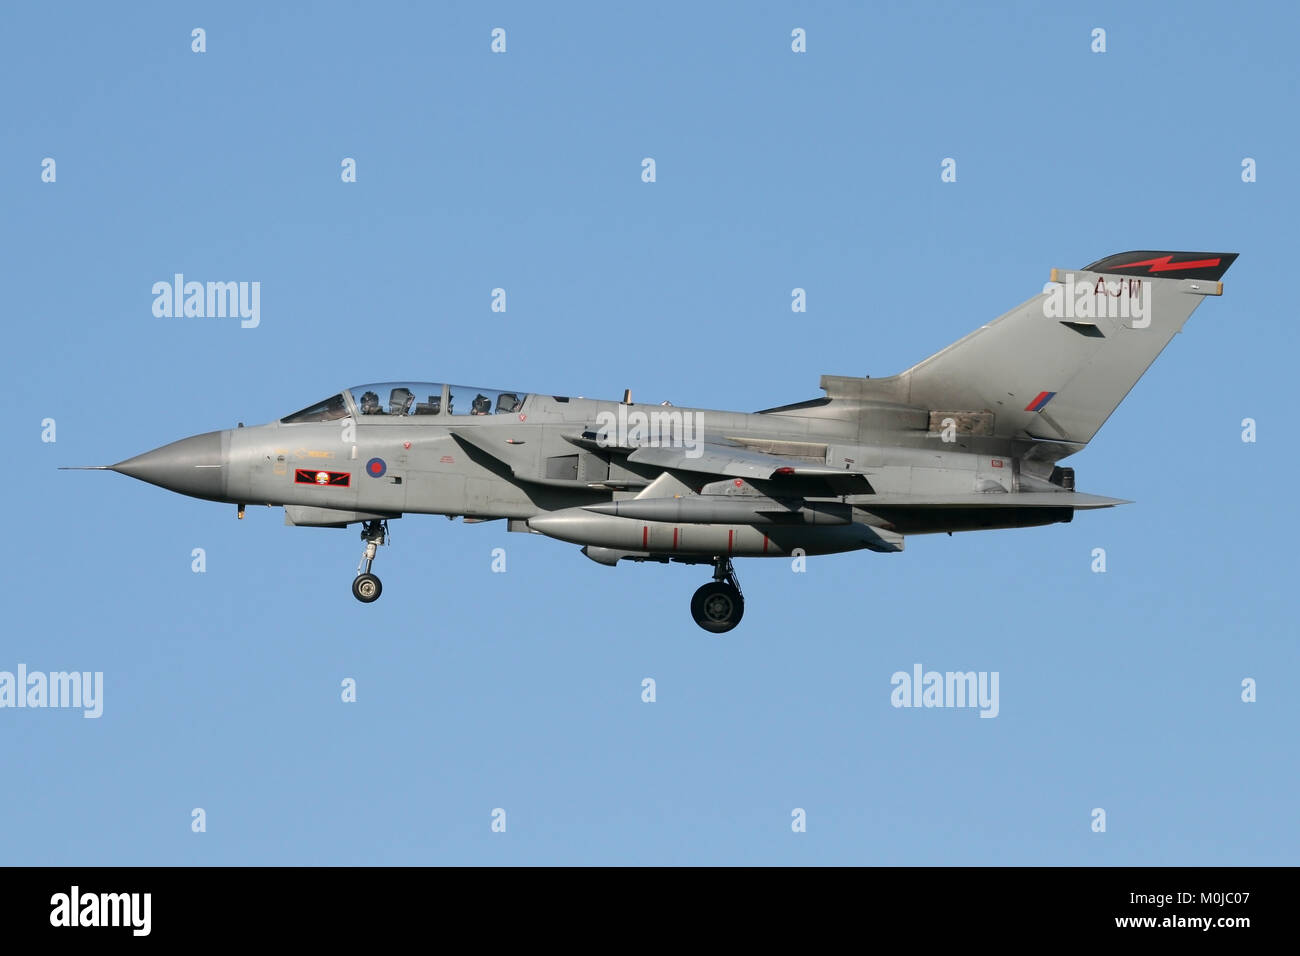 RAF Tornado GR4 carrying the markings of 617 Squadron, the famous Dambusters on the turn into RAF Marham in Norfolk. Stock Photo